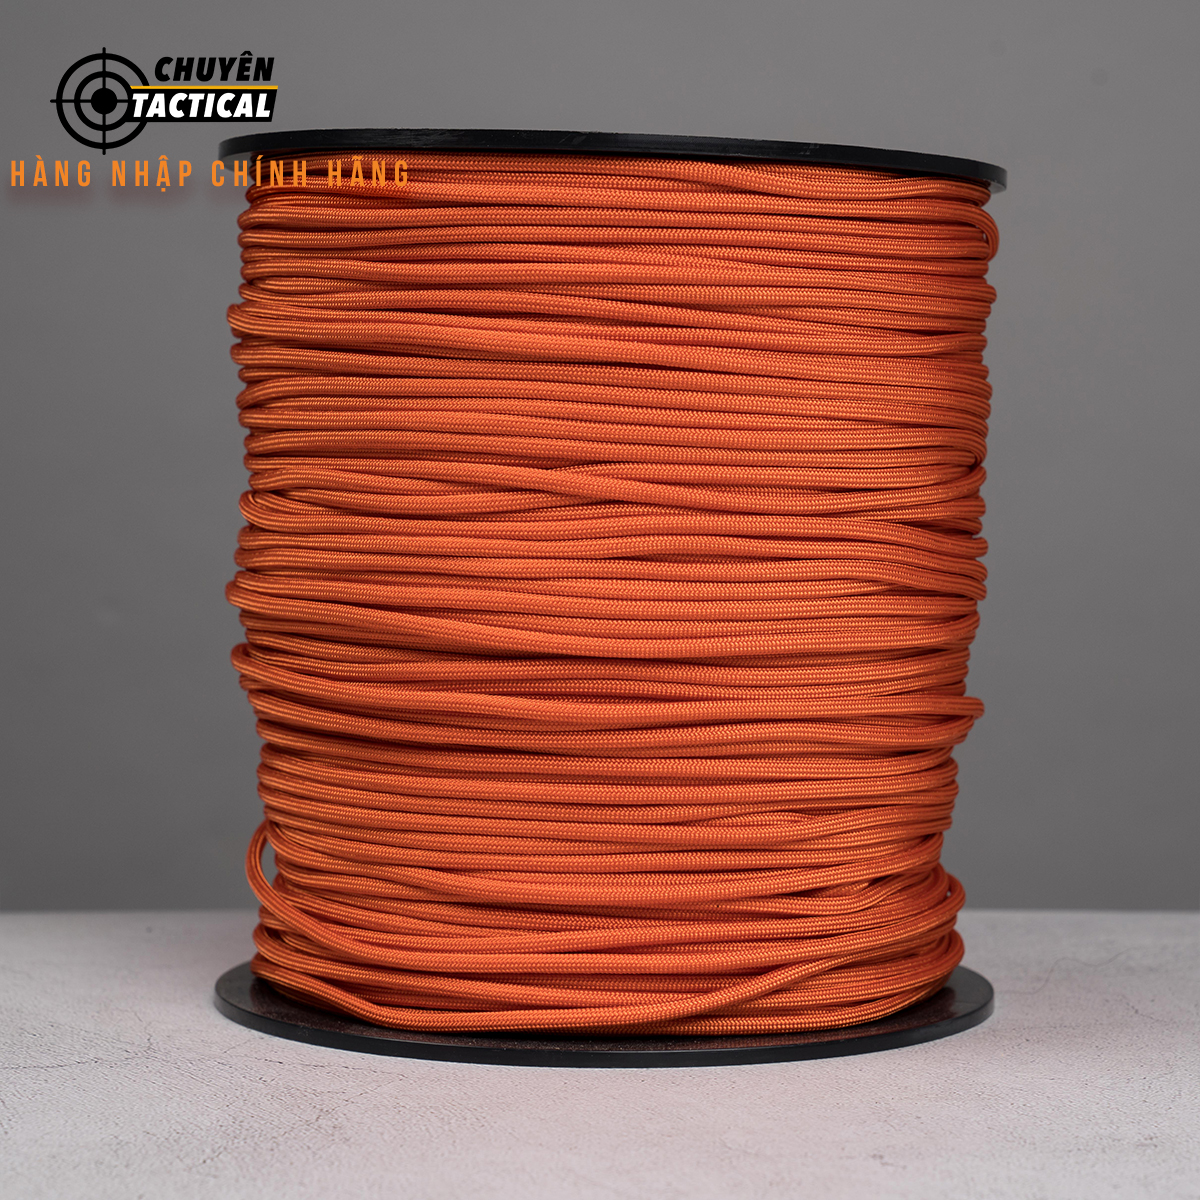 1m - Dây Paracord 550 - Burnt Orange